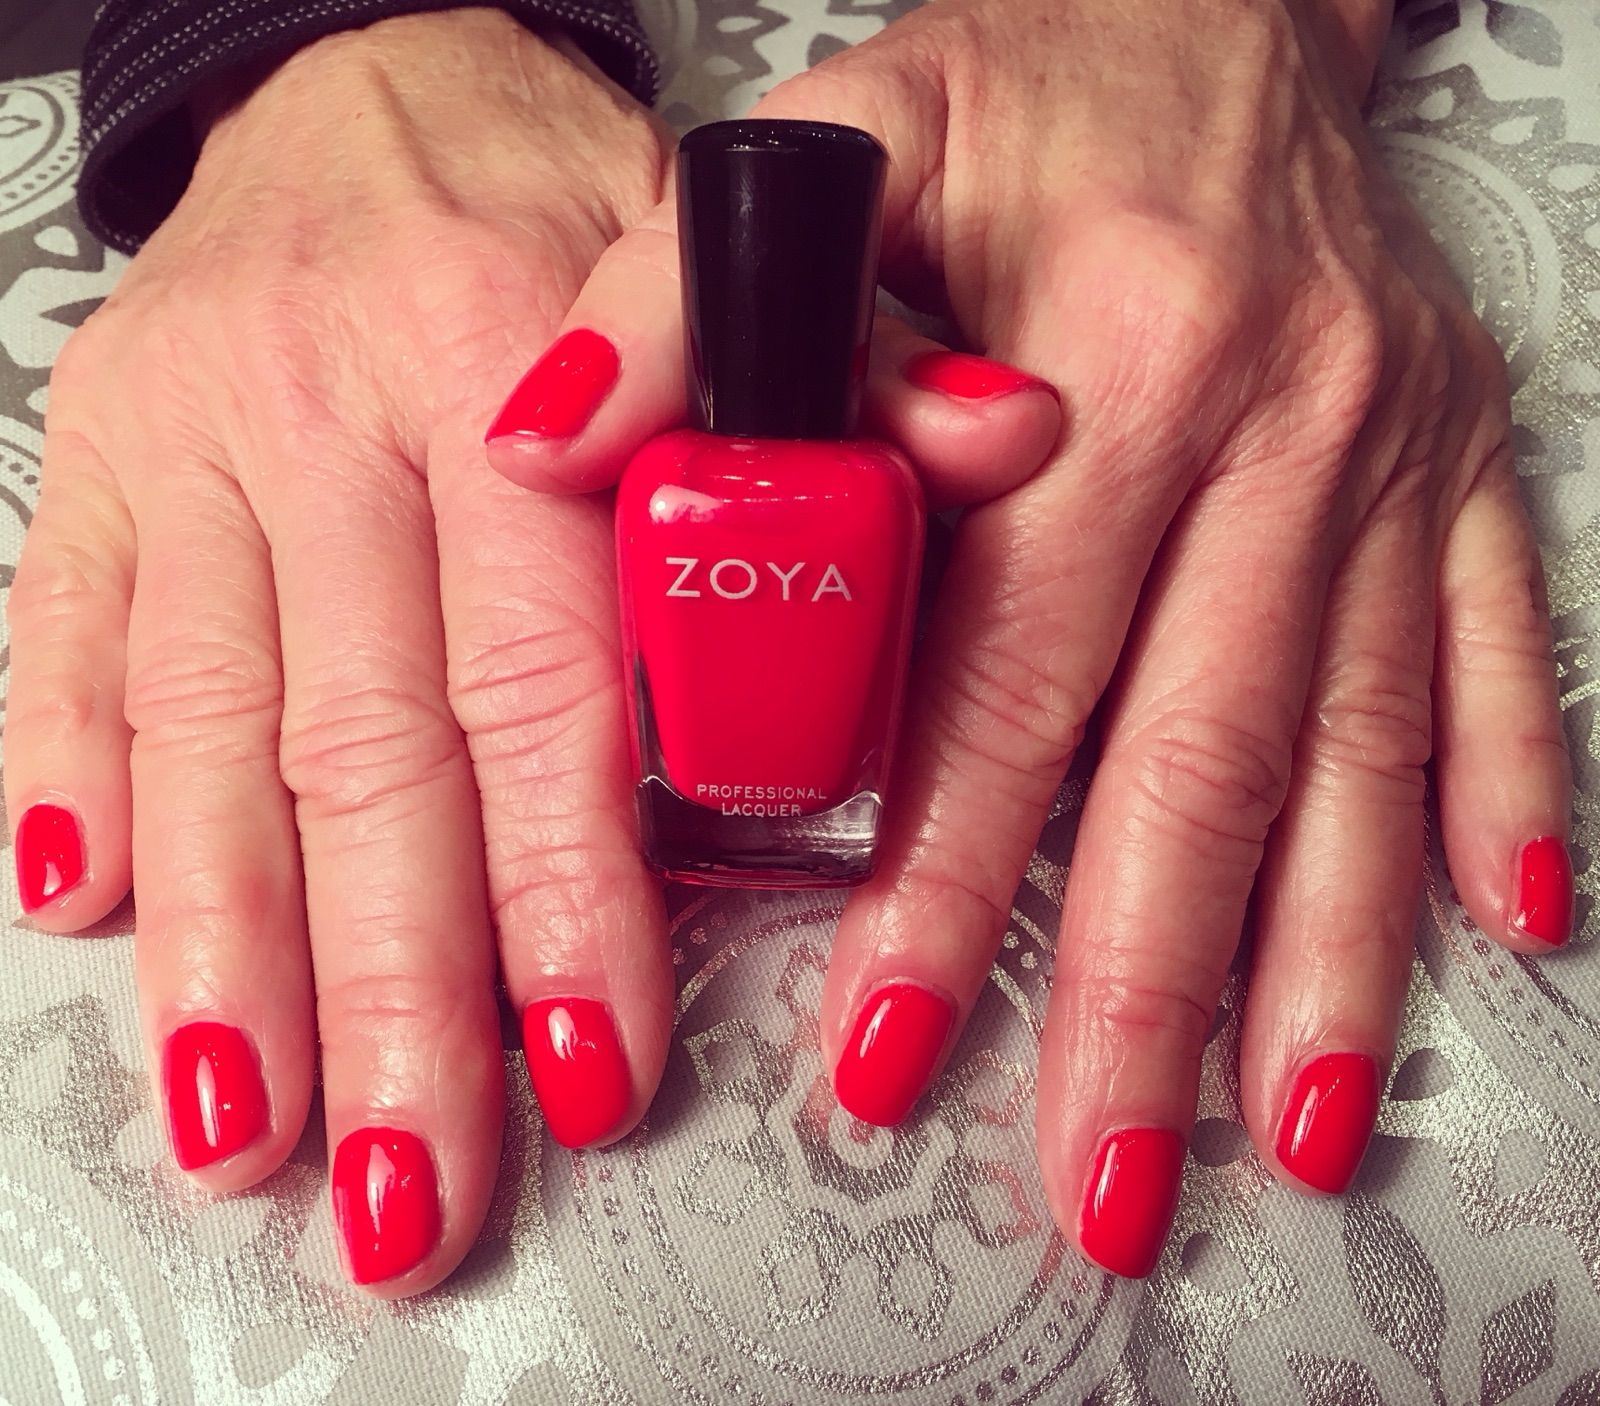 Zoya, Red Nails, Perfect Red, Perfect Red Mani, Red Manicure, Perfect Manicure, Best of Bend, Voted Best in Bend, Oregon, Best Manicure,